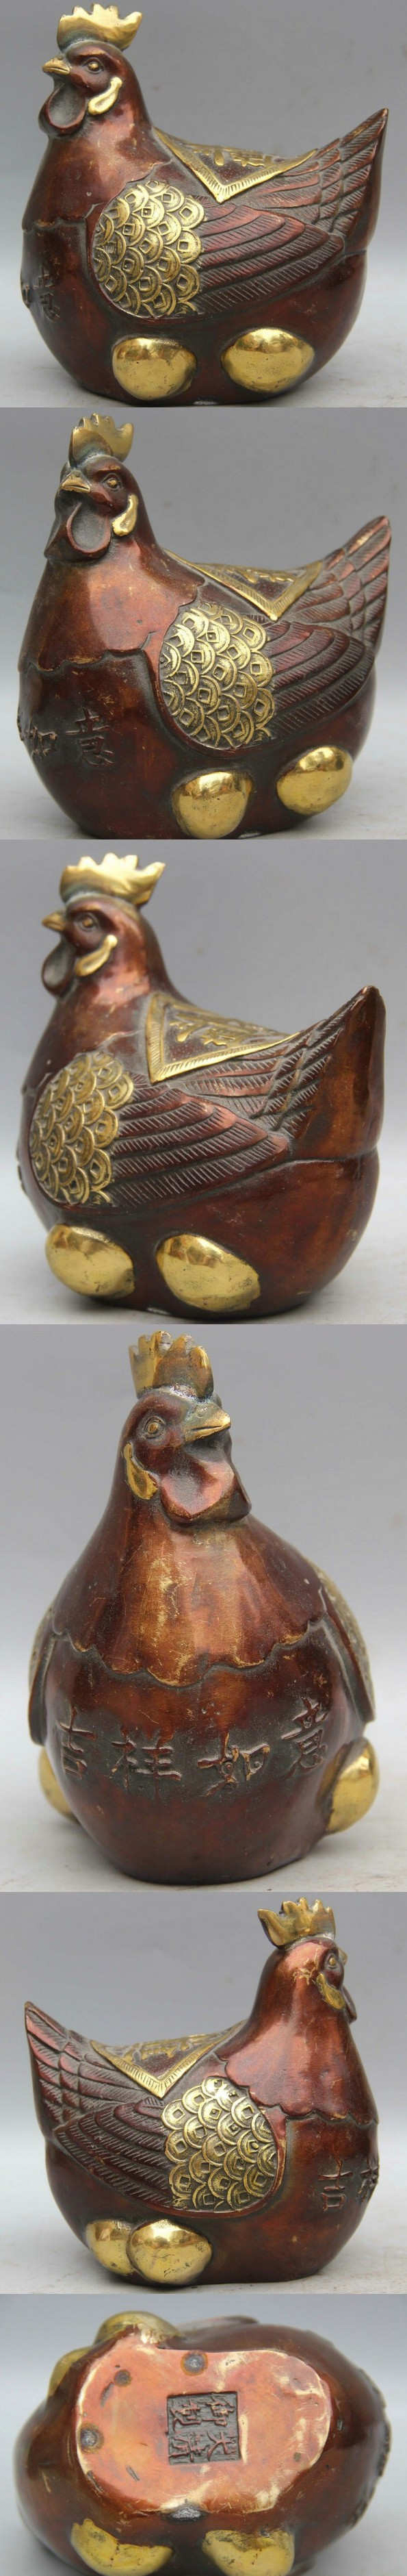 Song voge gem S2462 5 Chinese Fengshui Bronze Gilt Ru Yi Zodiac Year Rooster Cock Wealth Statue $117